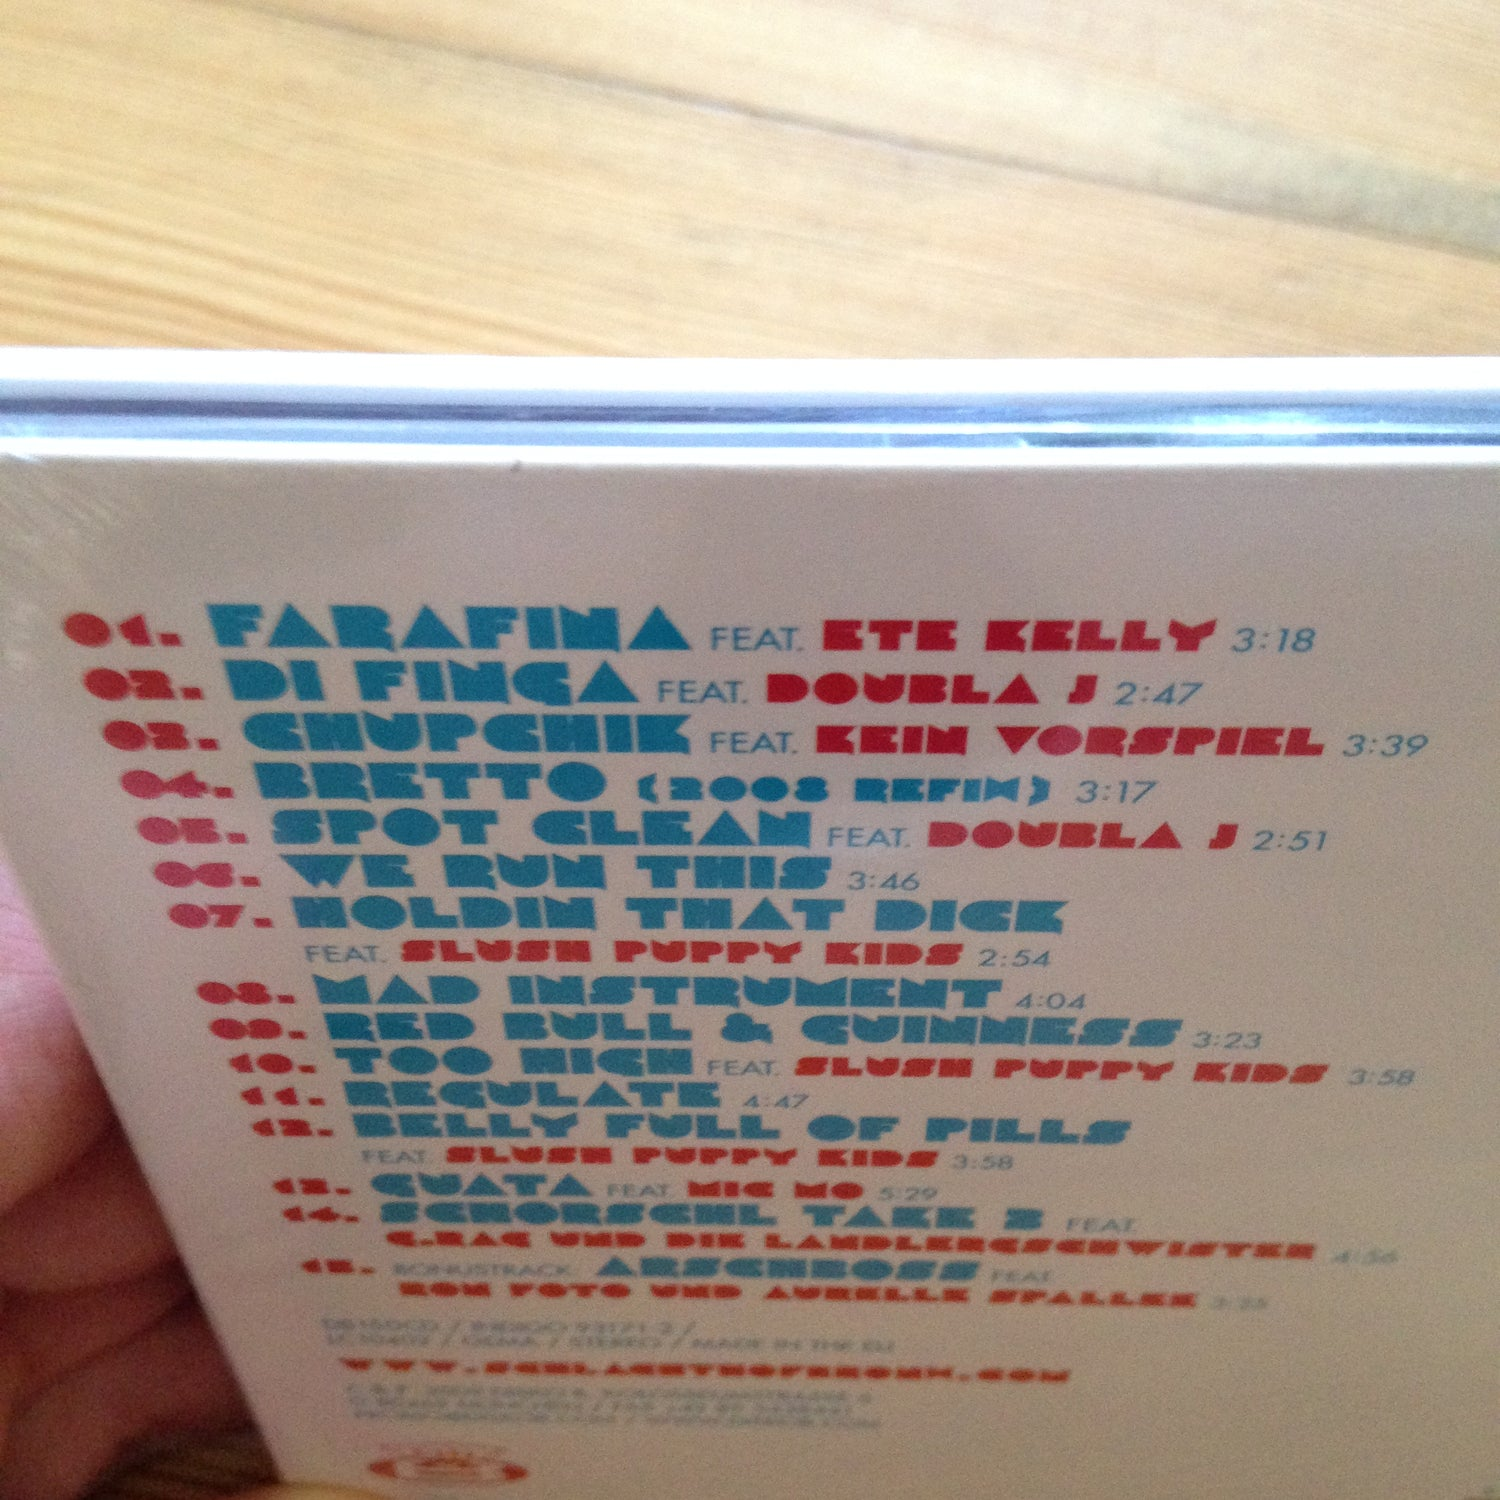 Image of Schlachthofbronx s/t (first) Album on CD